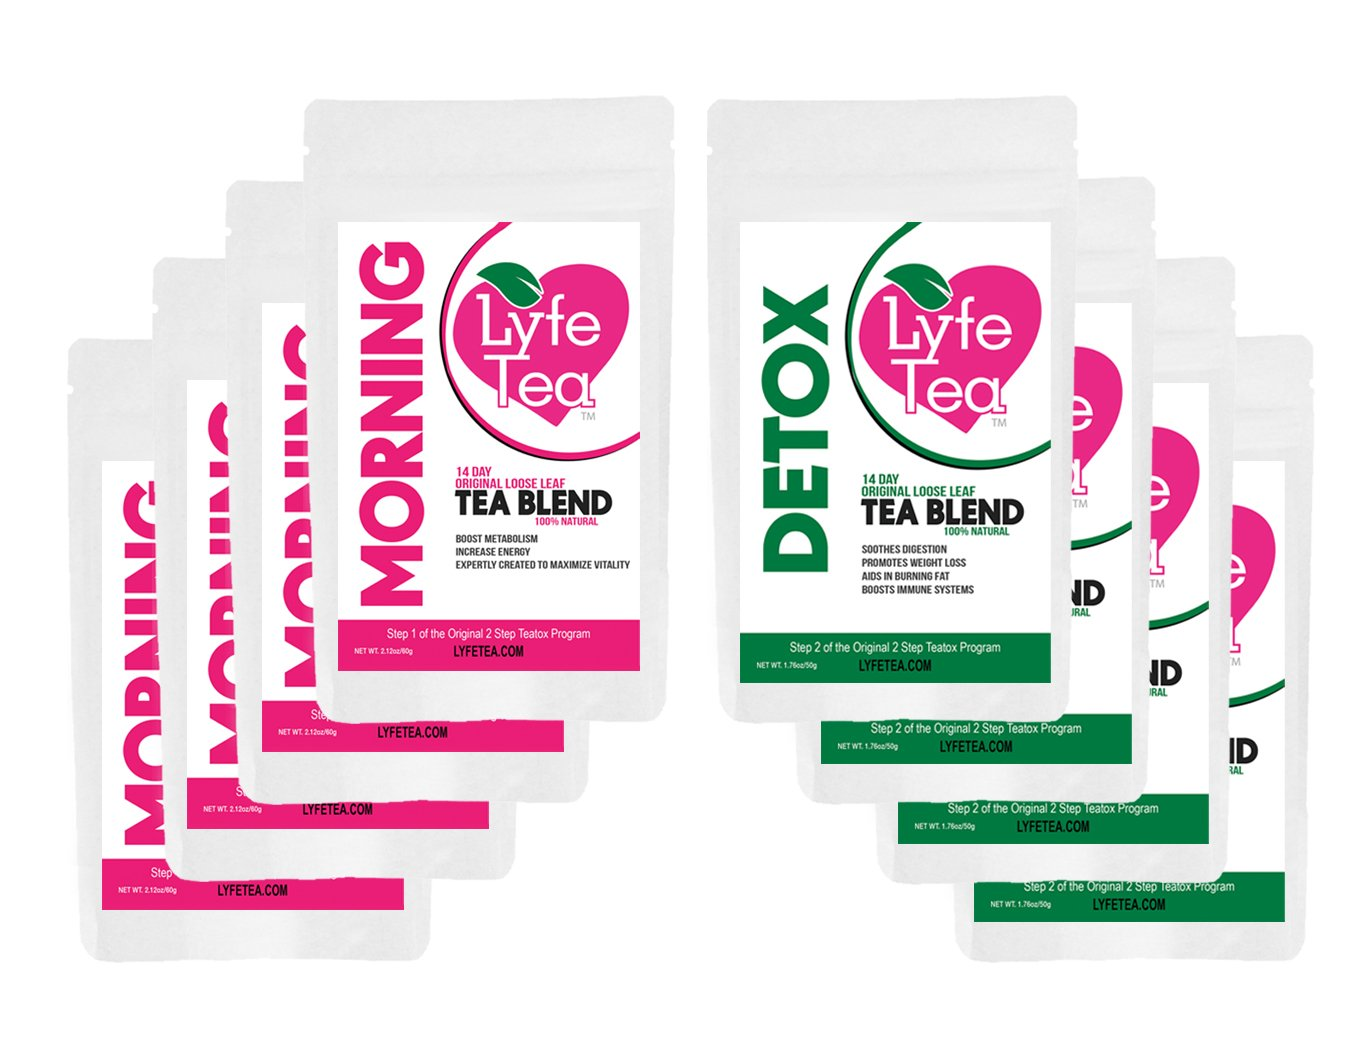 2 x 28 Day Loose Leaf Teatox - Natural Weight Loss - Lyfe Tea Herbal Cleanse Tea Bags - Aid Digestion, Boost Energy, Elevate Mood, Suppress Appetite